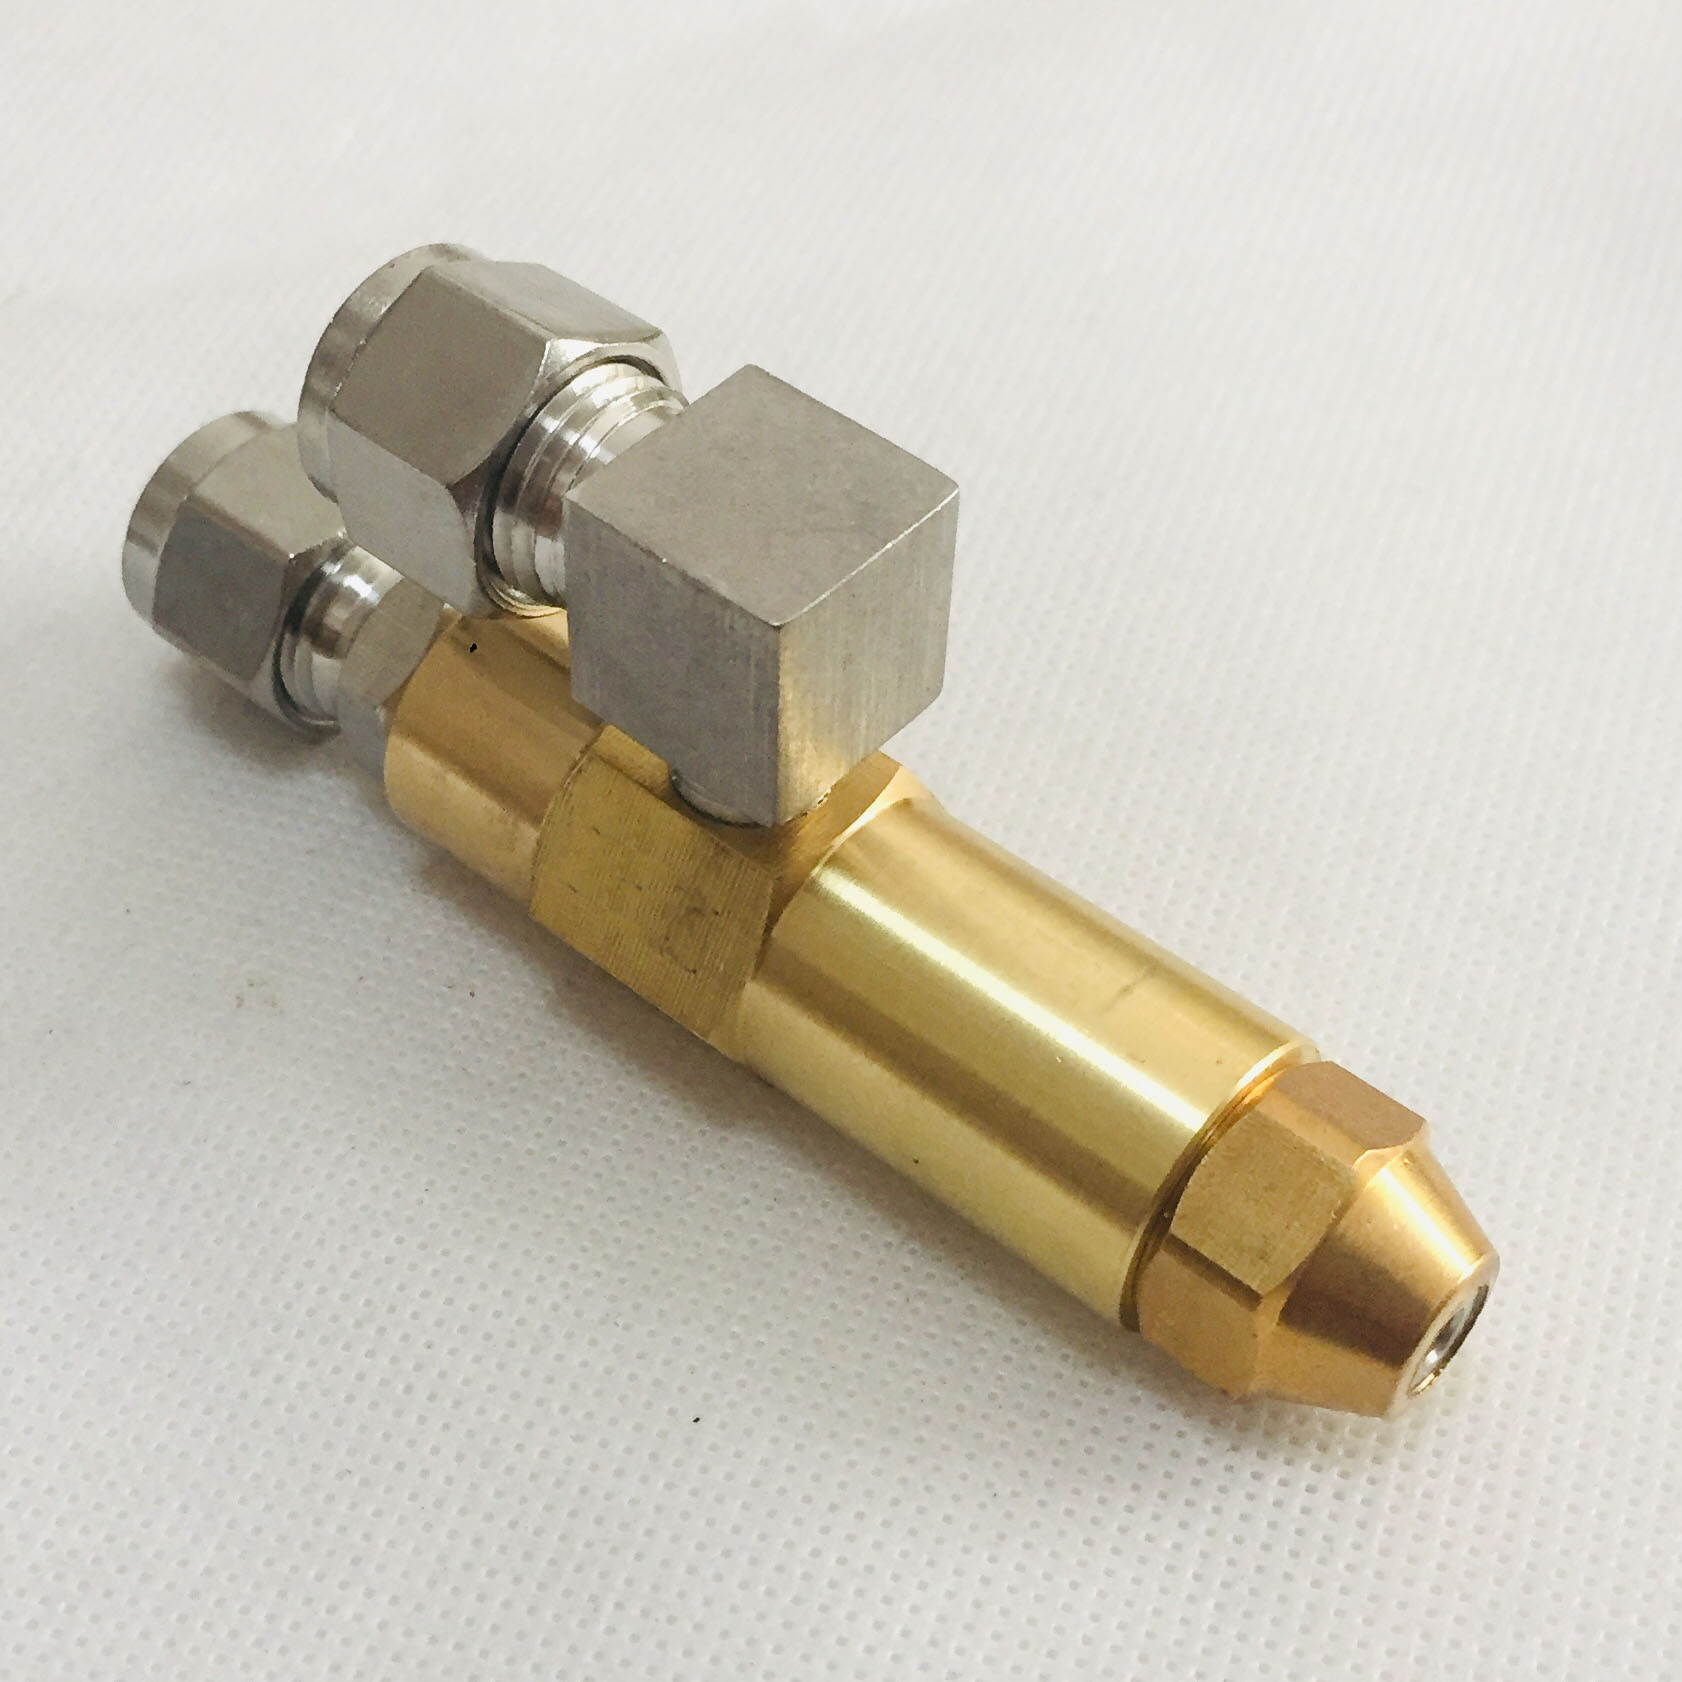 68mm 0.5/0.8/1.0/1.2/1.5/2.0/2.5/3.0mm Waste Oil Burner Nozzle,air Atomizing Nozzle,fuel Oil Nozzle,full Cone Oil Spray Nozzle